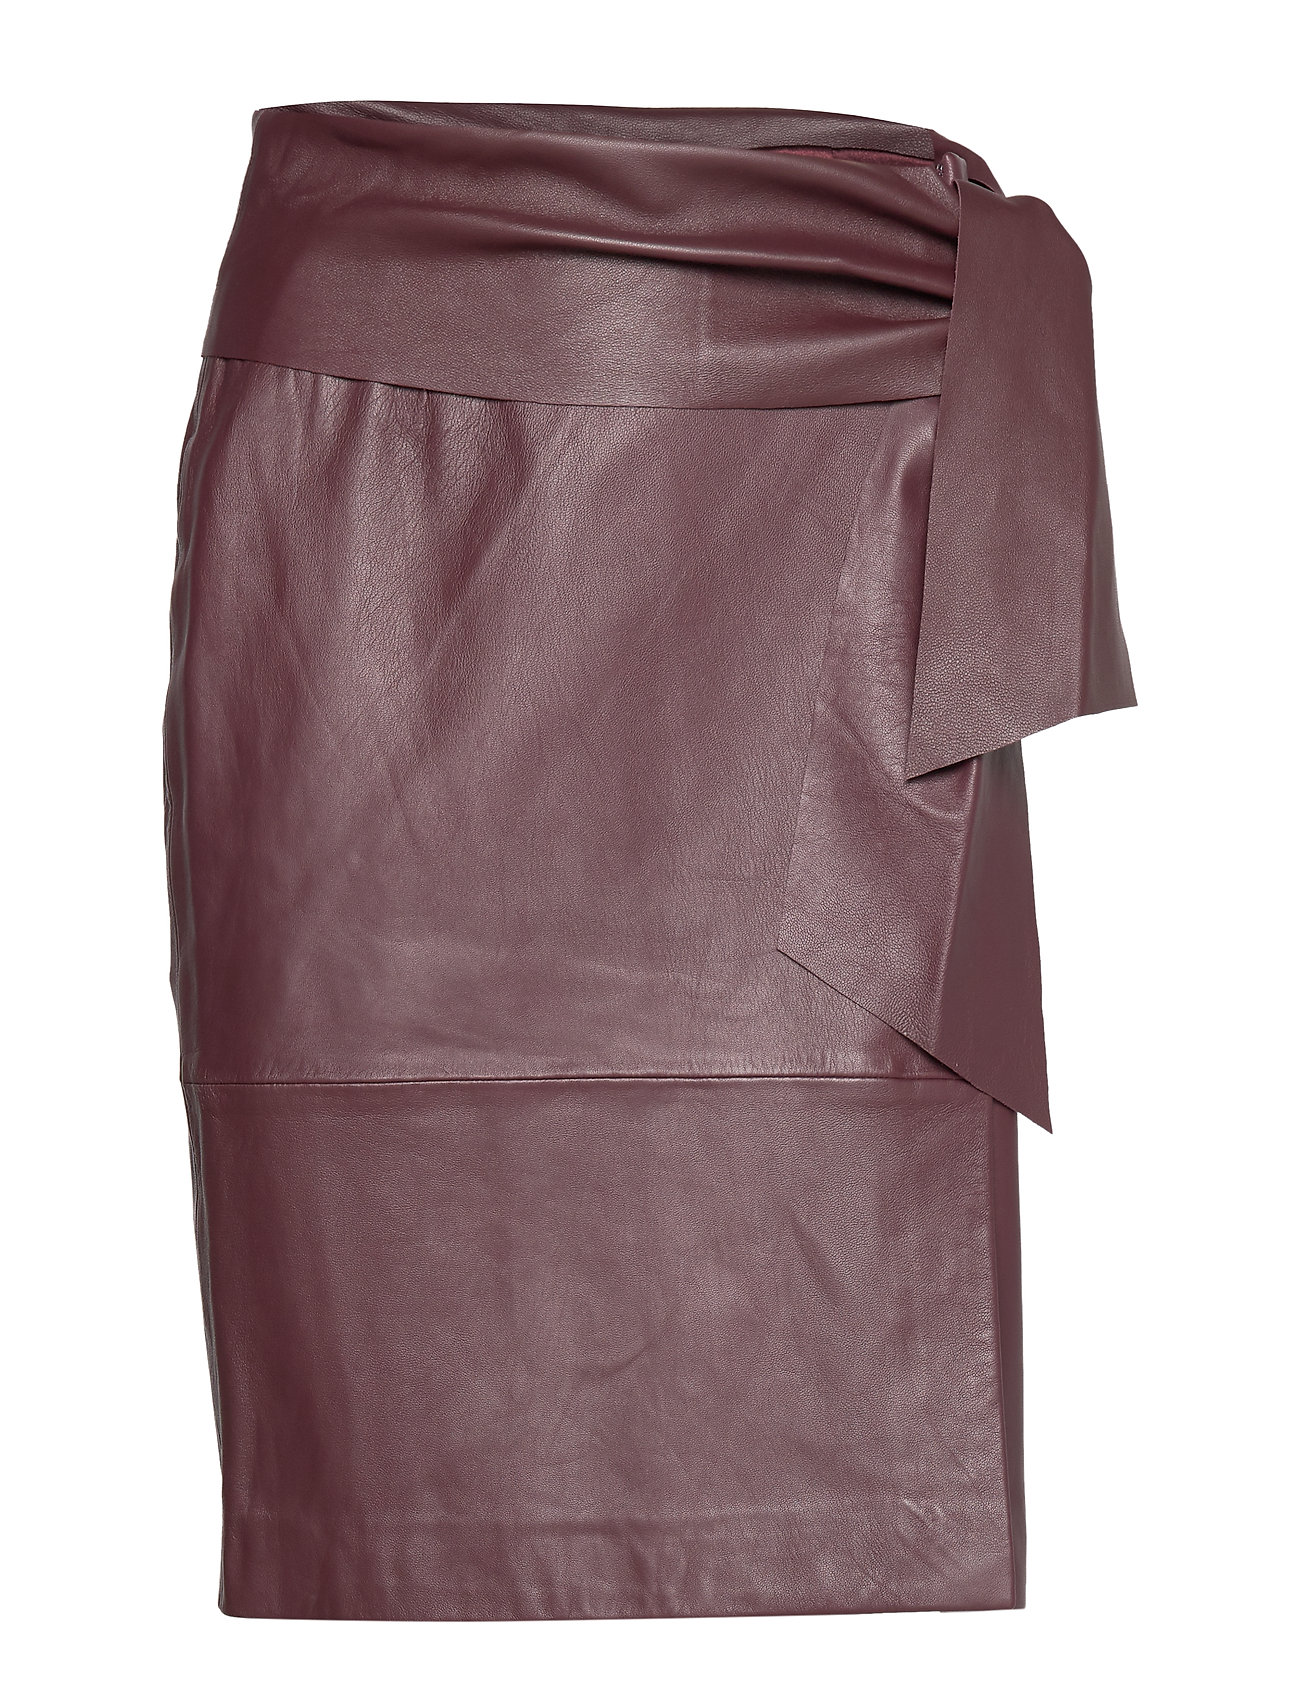 Gestuz AliahGZ skirt MA19 - PORT ROYALE